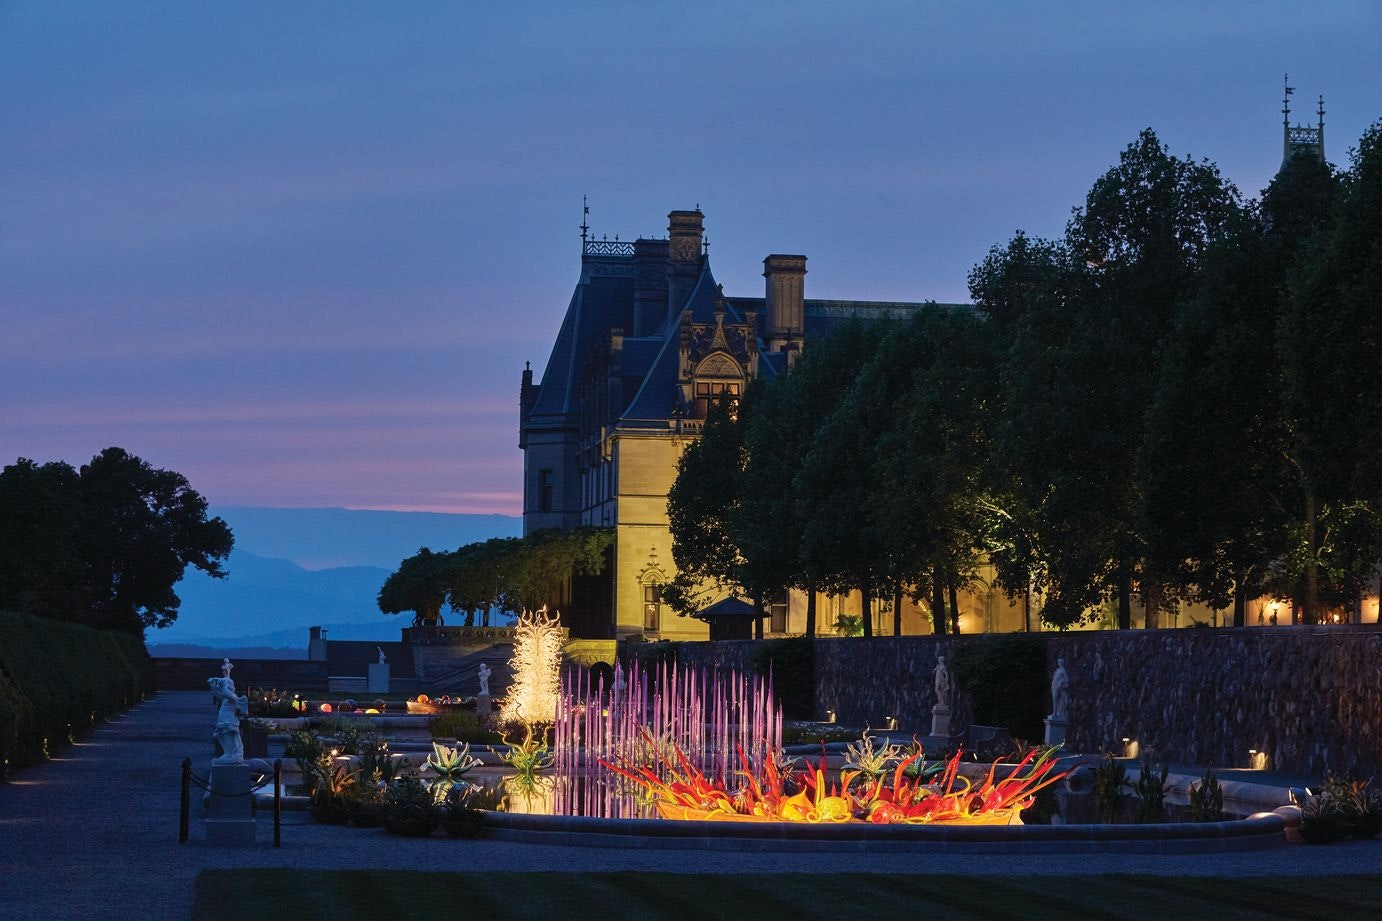 On selected evenings, the Biltmore Estate turns on the lights for Chihuly Nights.